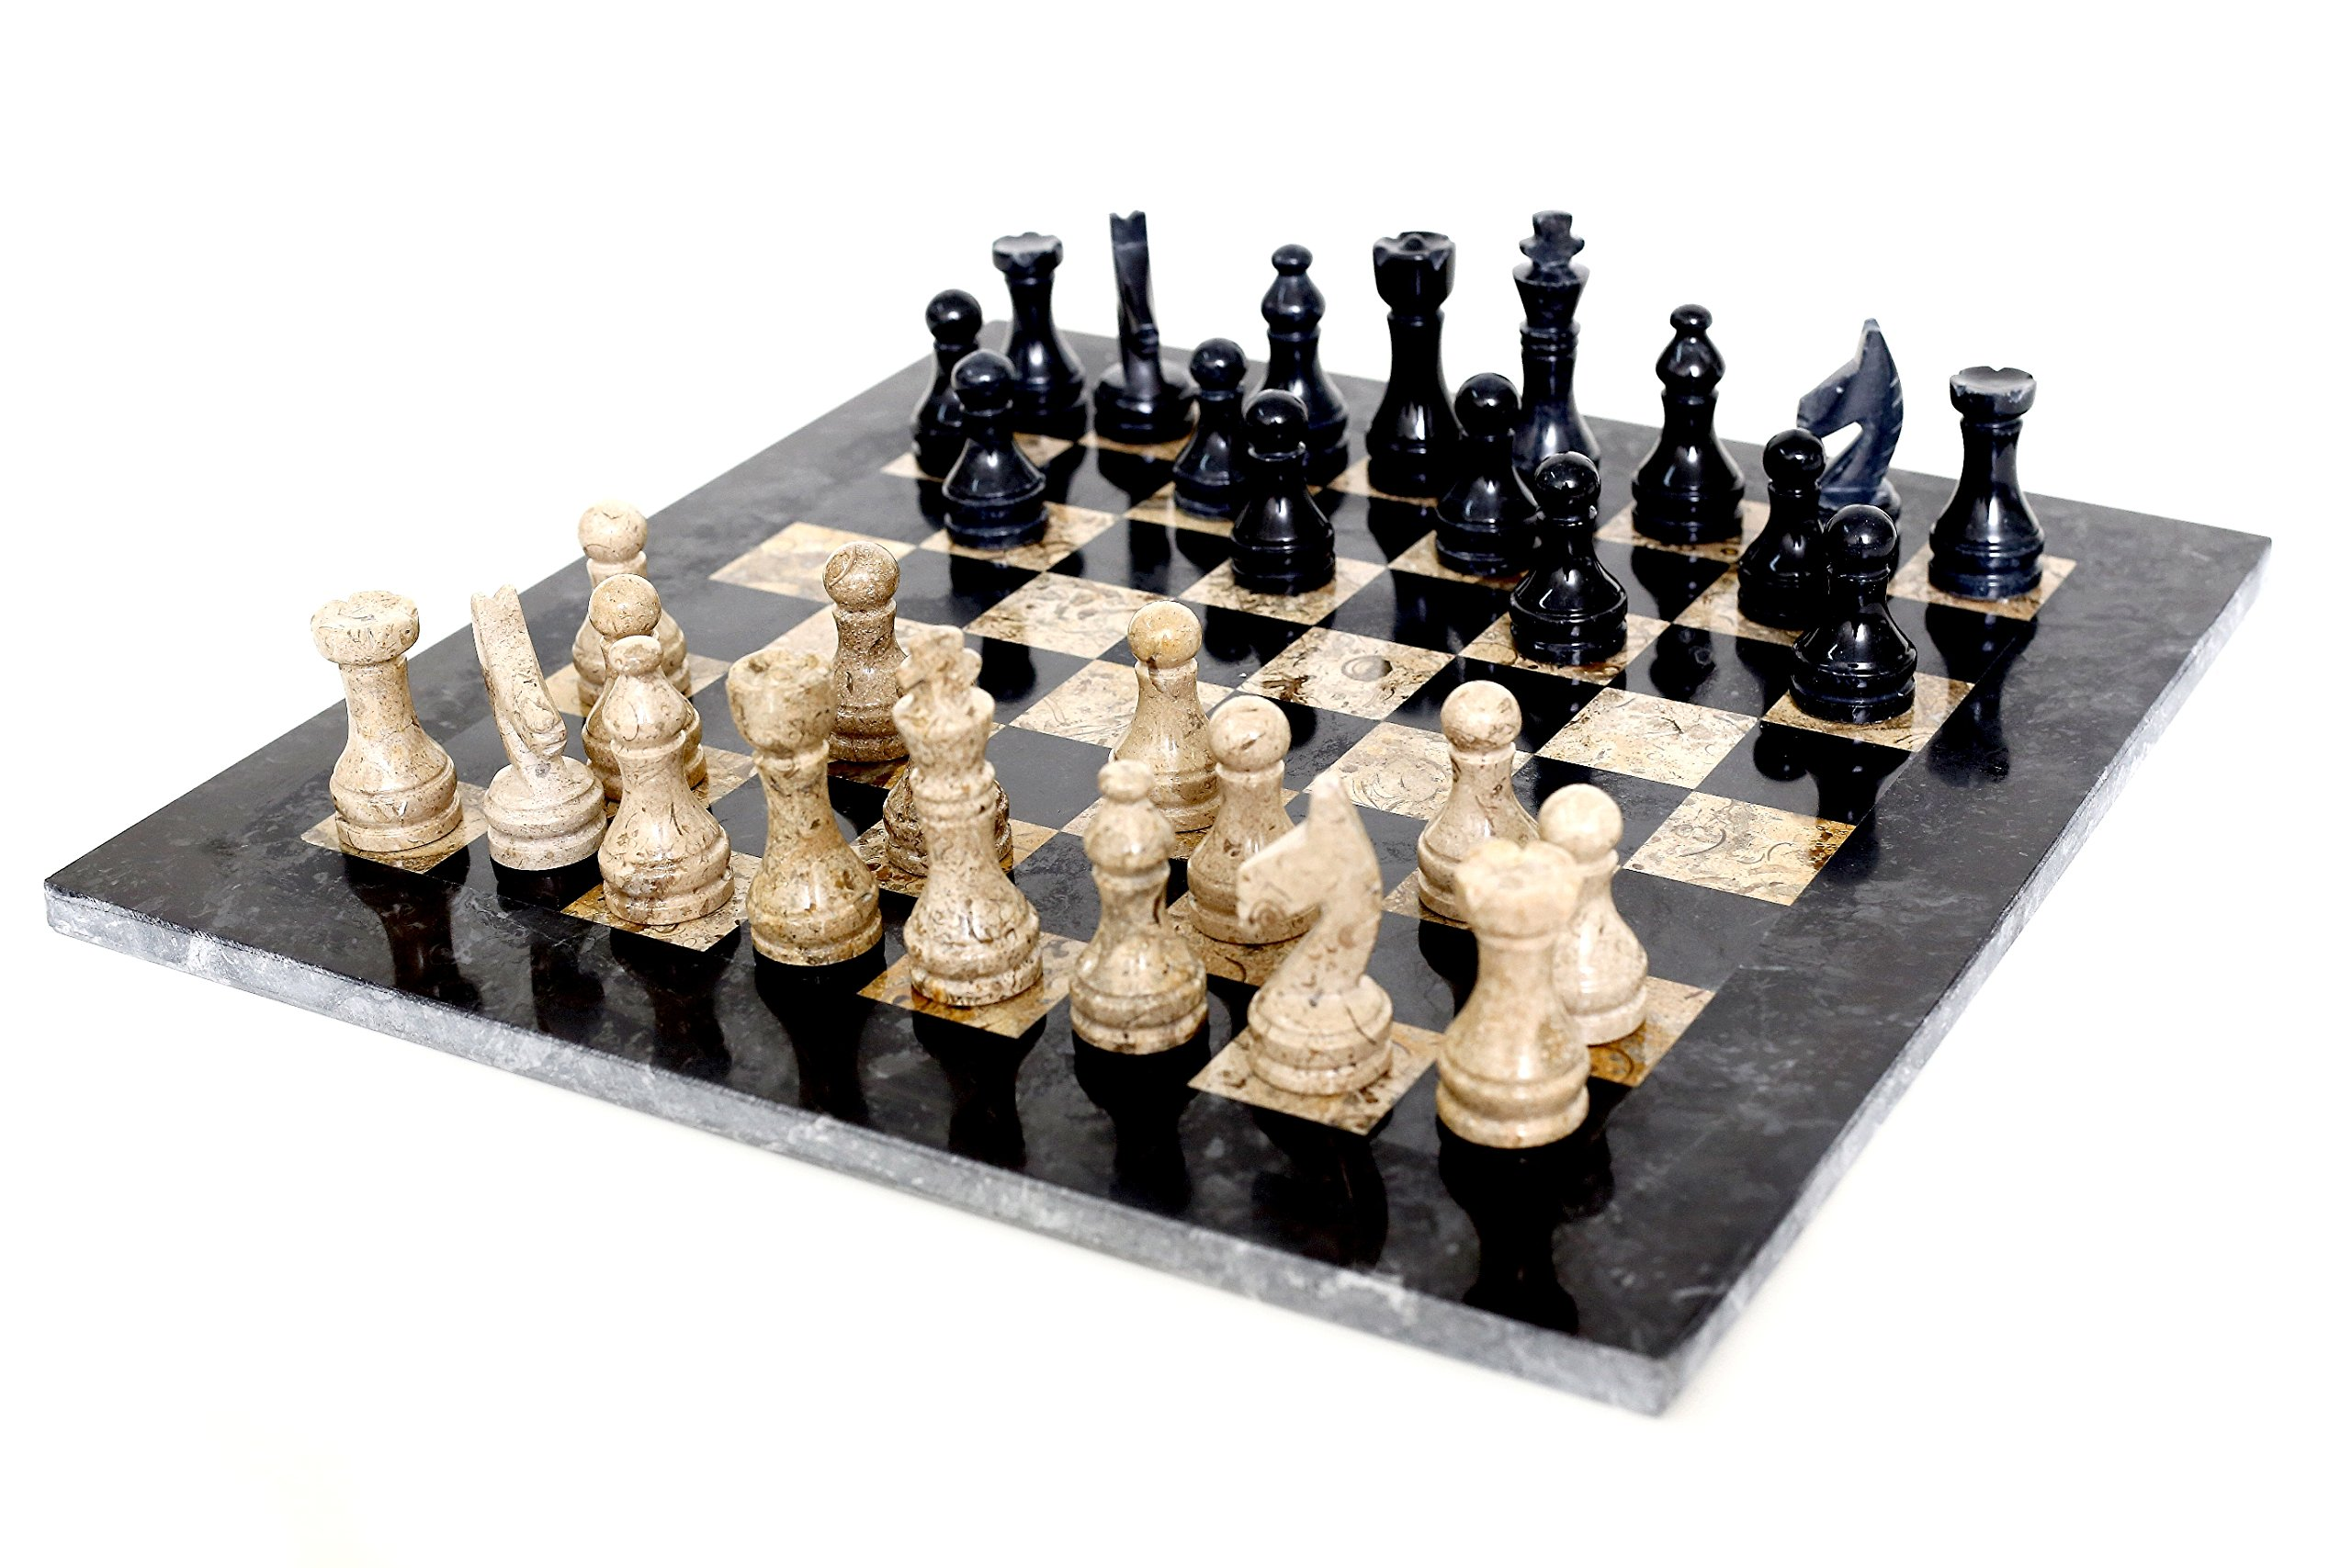 RADICALn 16 Inches Large Handmade Black and Fossil Coral Weighted Marble Full Chess Game Set Staunton and Ambassador GiftStyle Marble Tournament Chess Sets -Non Wooden -Non Magnetic -Not Backgammon